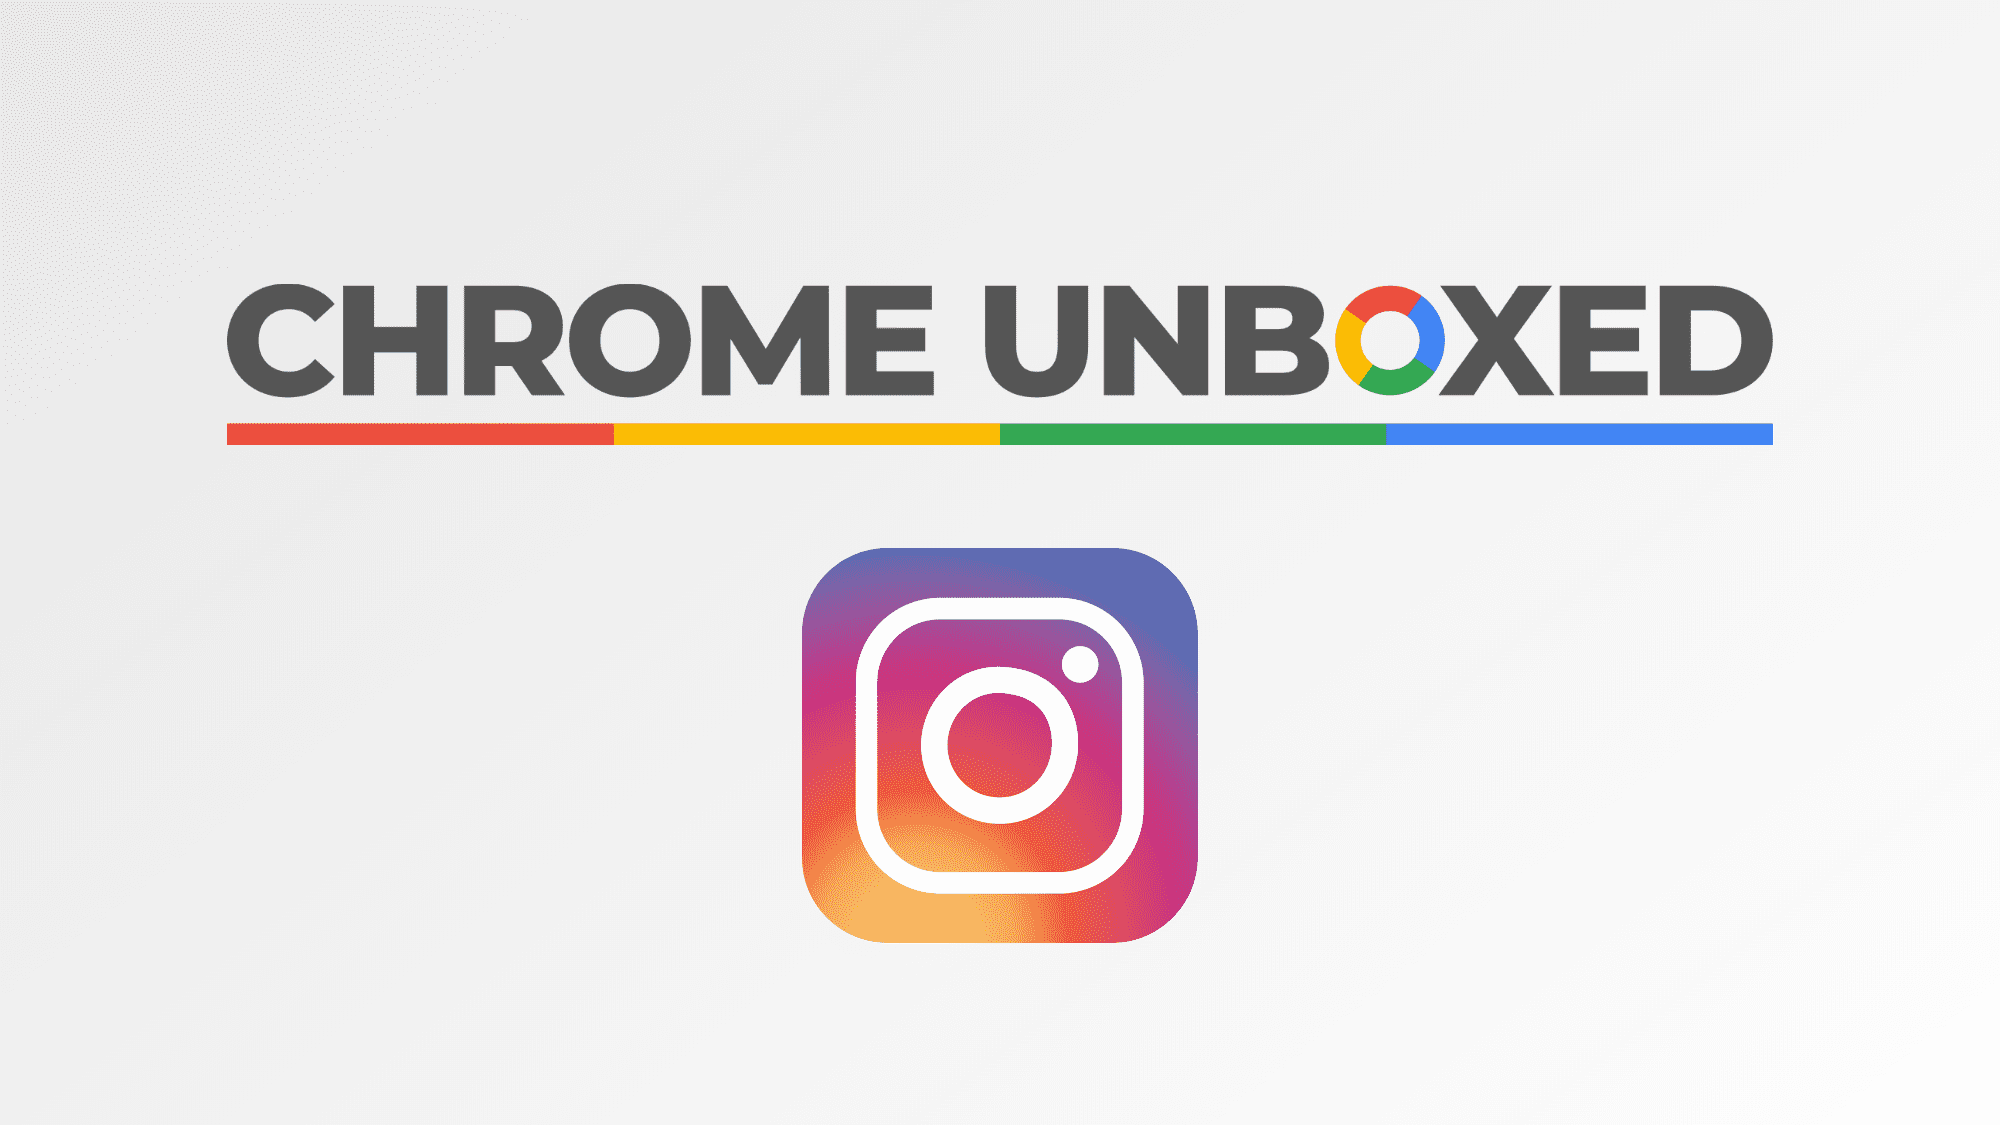 Chrome Unboxed Behind The Scenes In NYC On Instagram